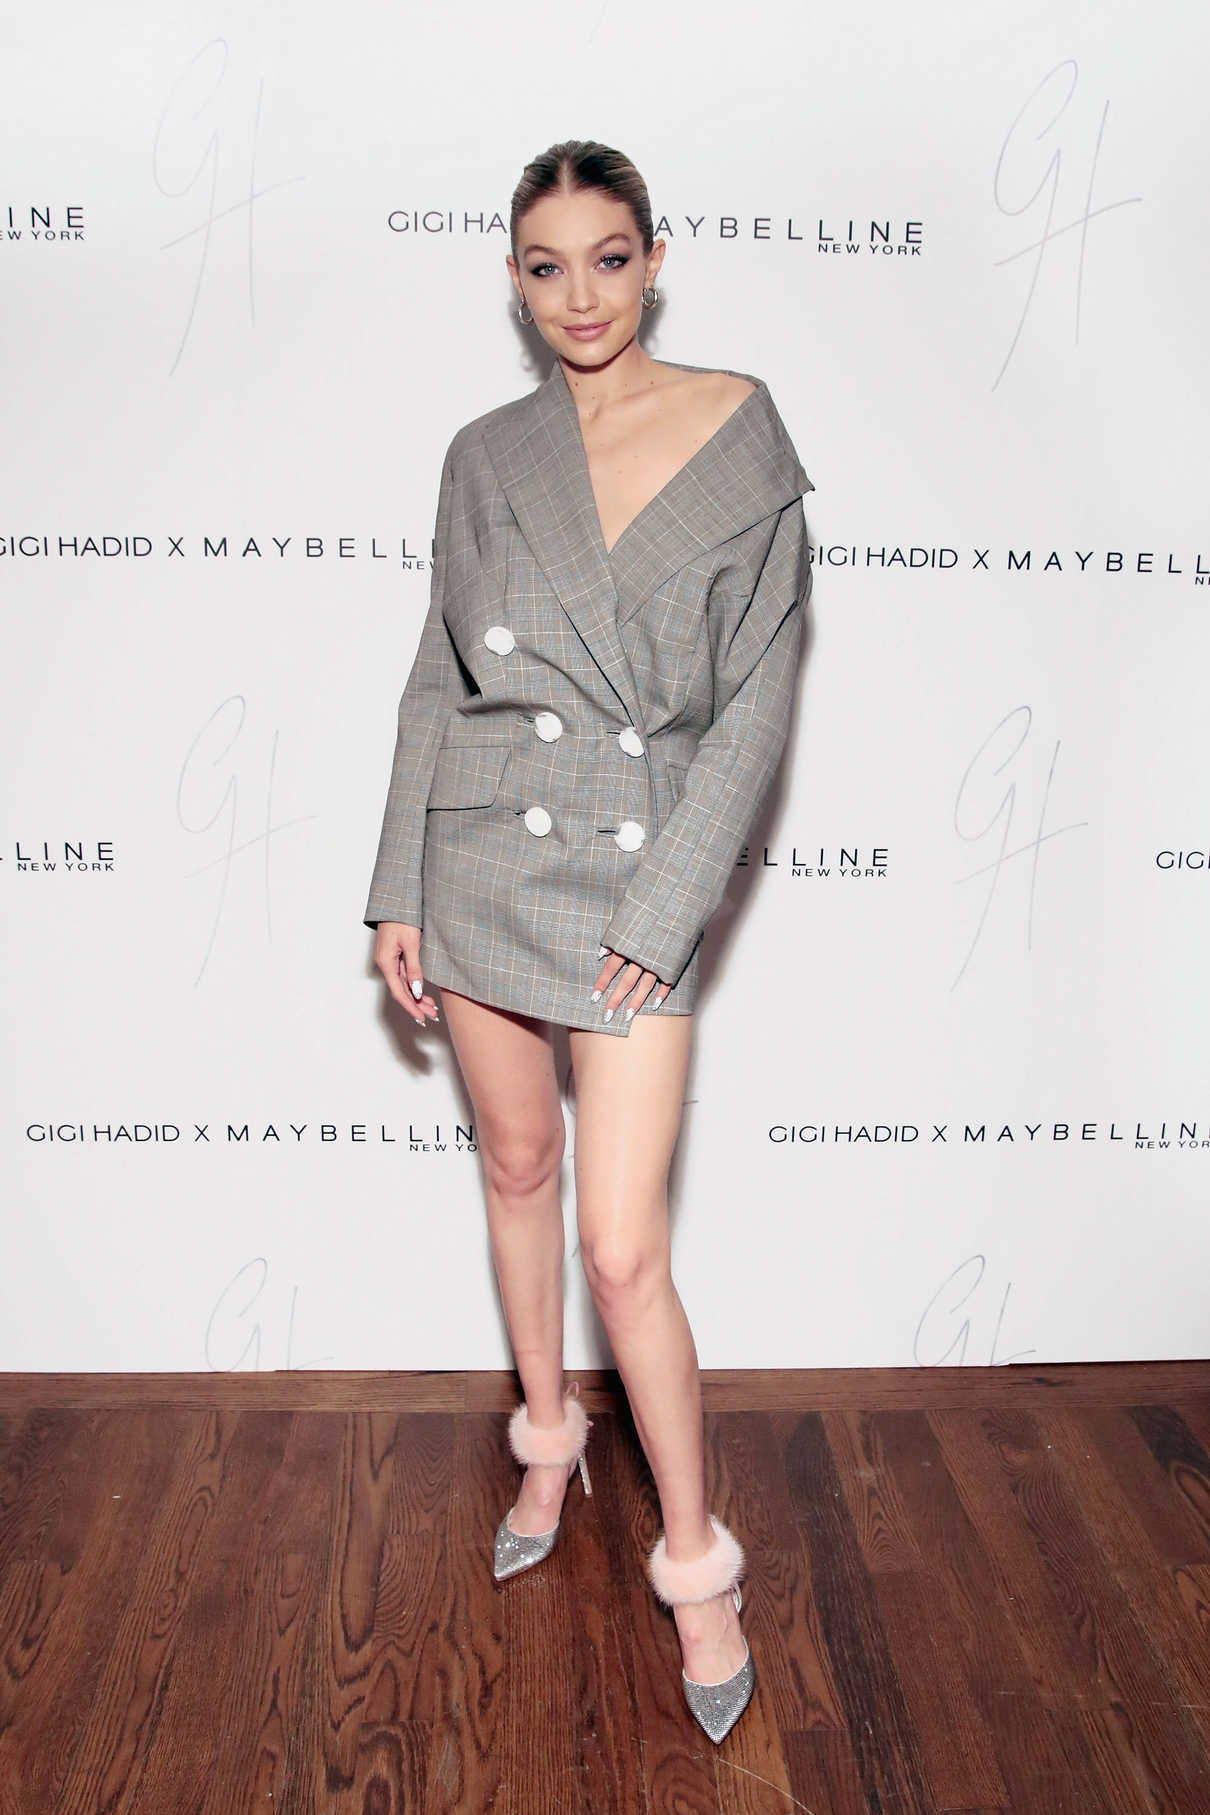 Gigi Hadid Attends the Gigi Hadid x Maybelline New York International Launch Party in NYC 11/03/2017-5